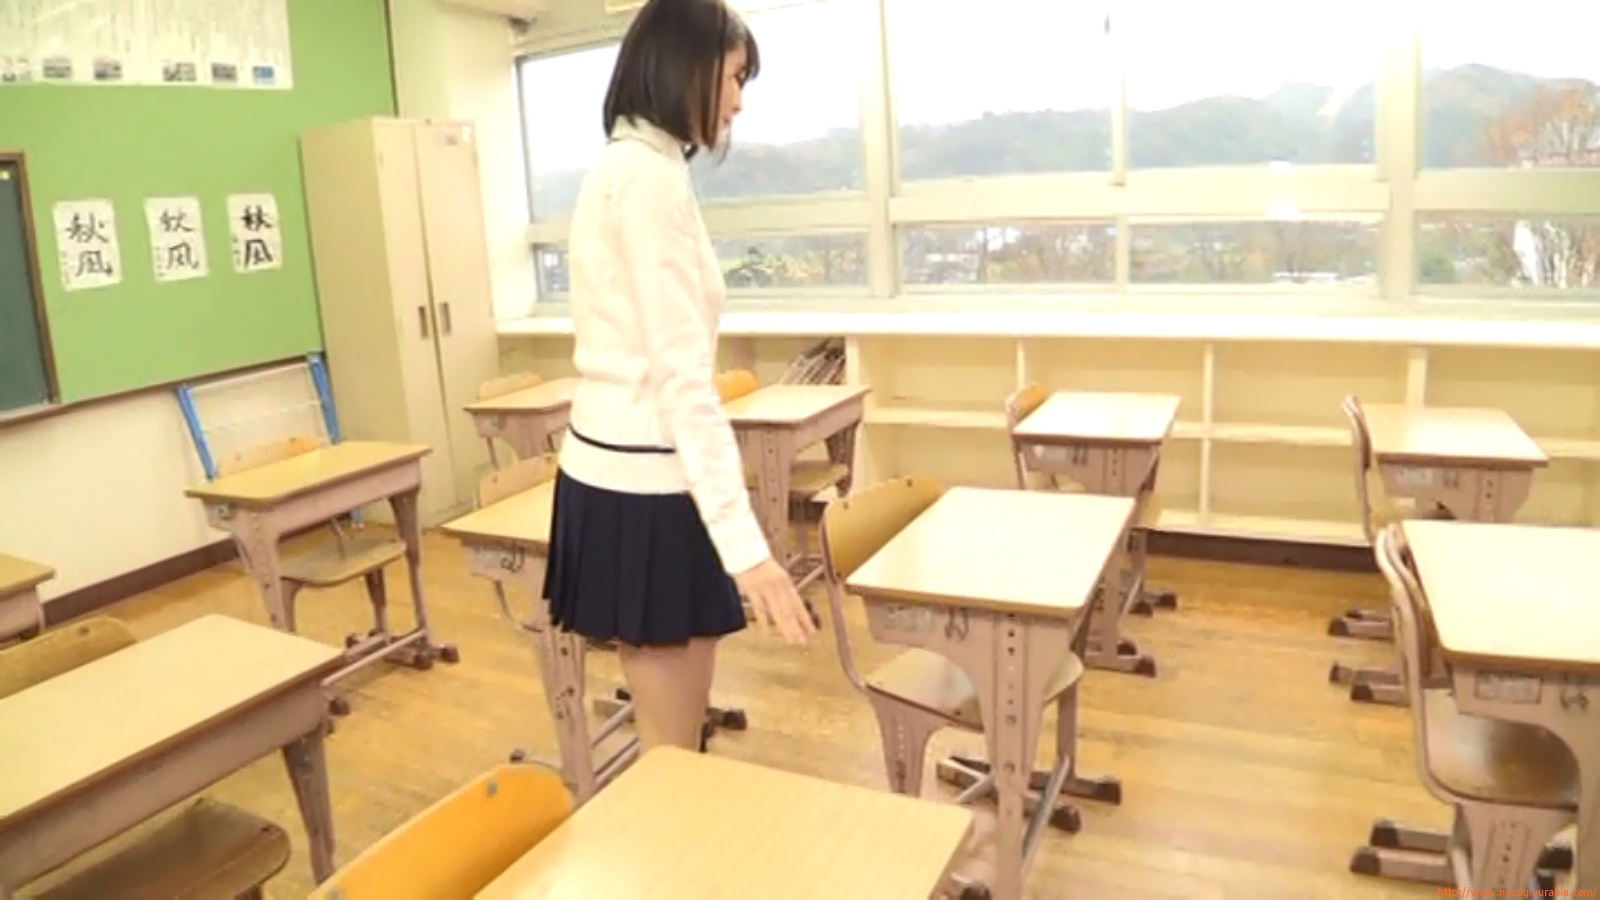 Two-person classroom037